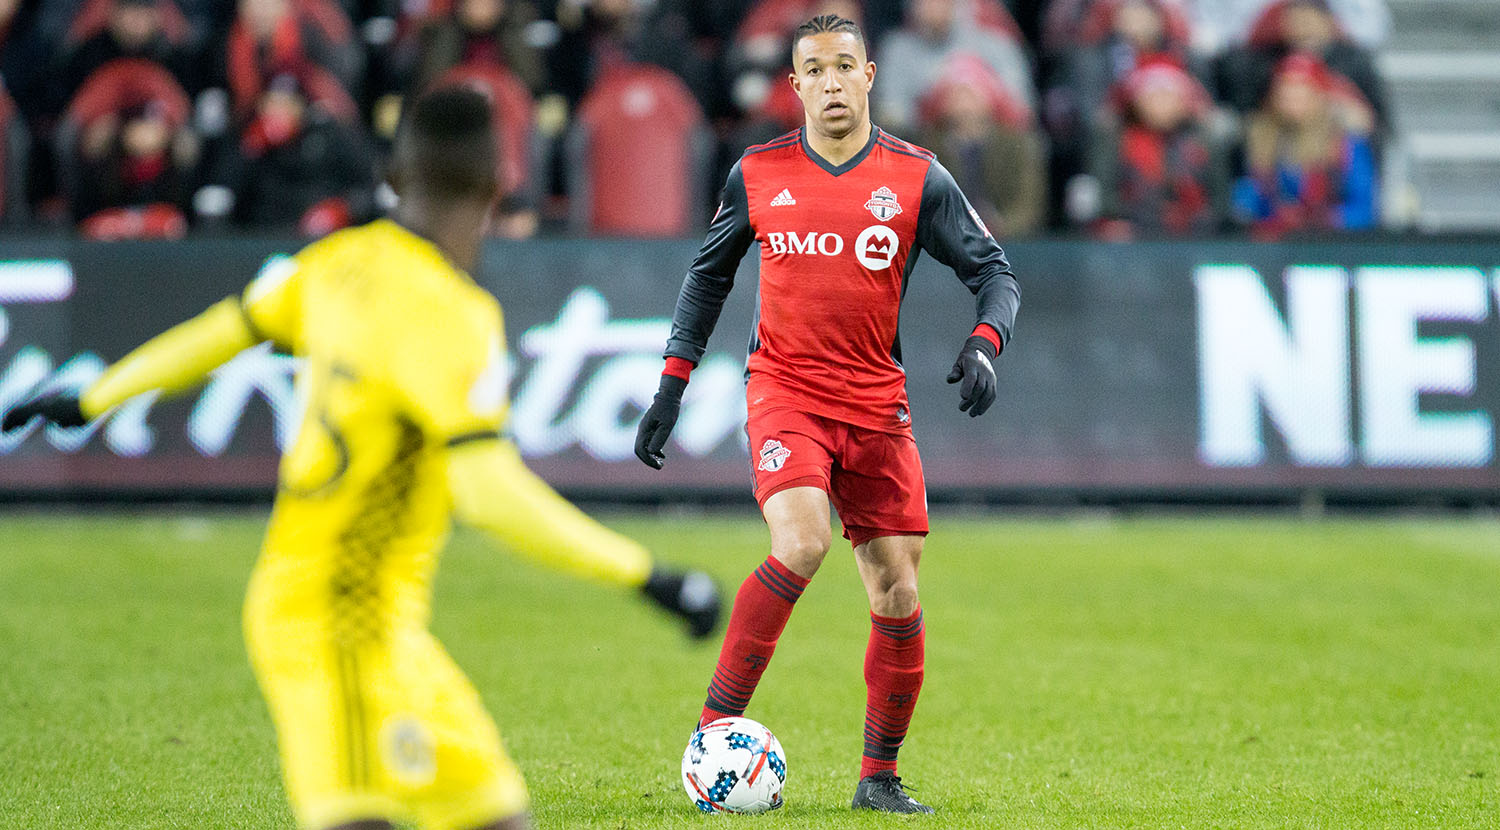 Justin Morrow on the ball as a Columbus Crew player anticipates which direction he will go.Image by Dennis Marciniak of denMAR Media.